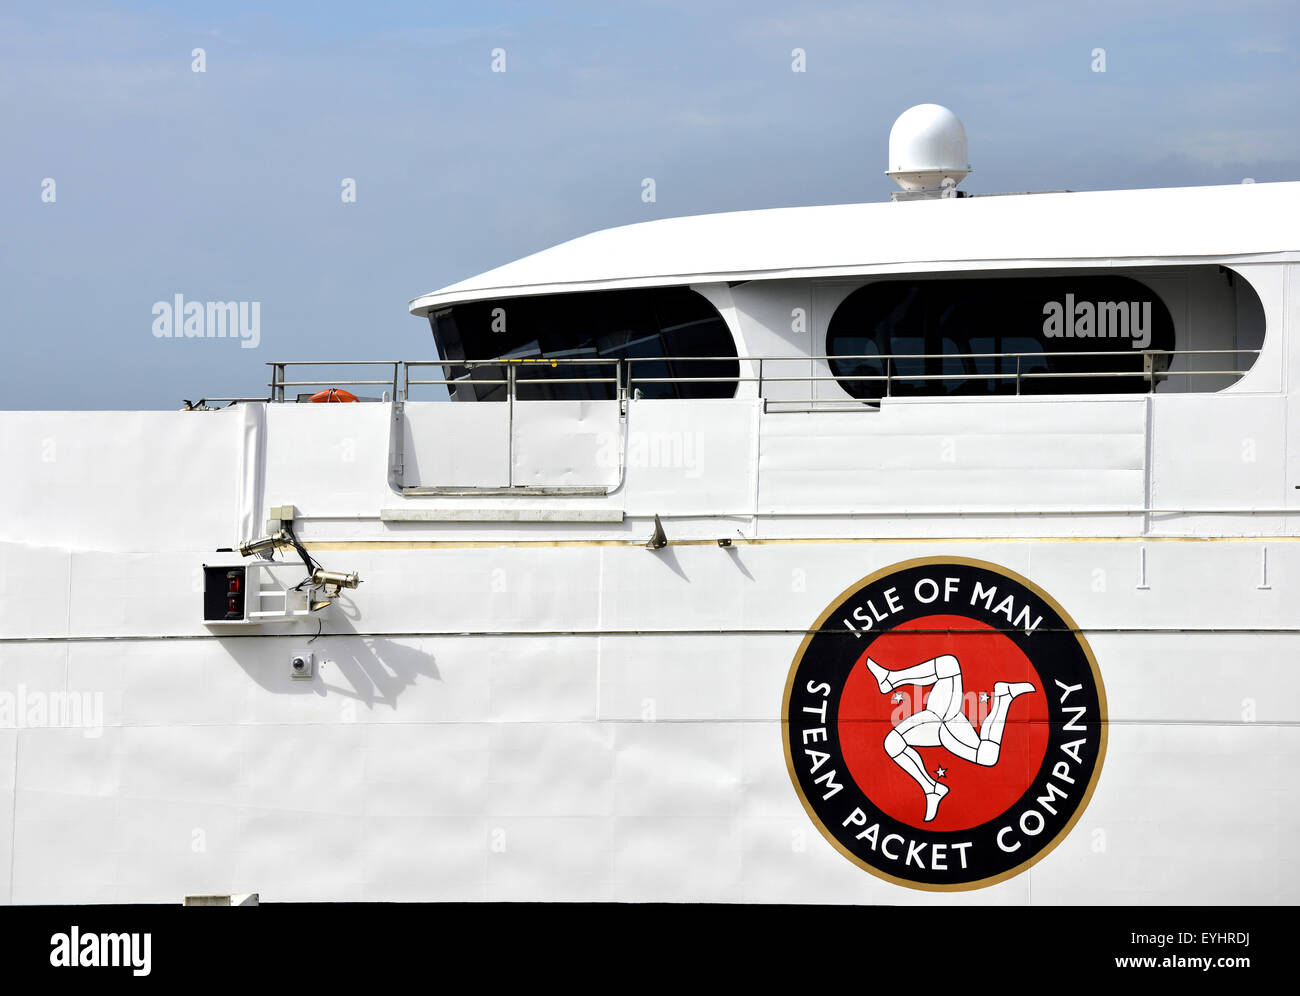 The Isle of Man Steam Packet Company fast cat ferry. The City of Liverpool , Britain. Stock Photo